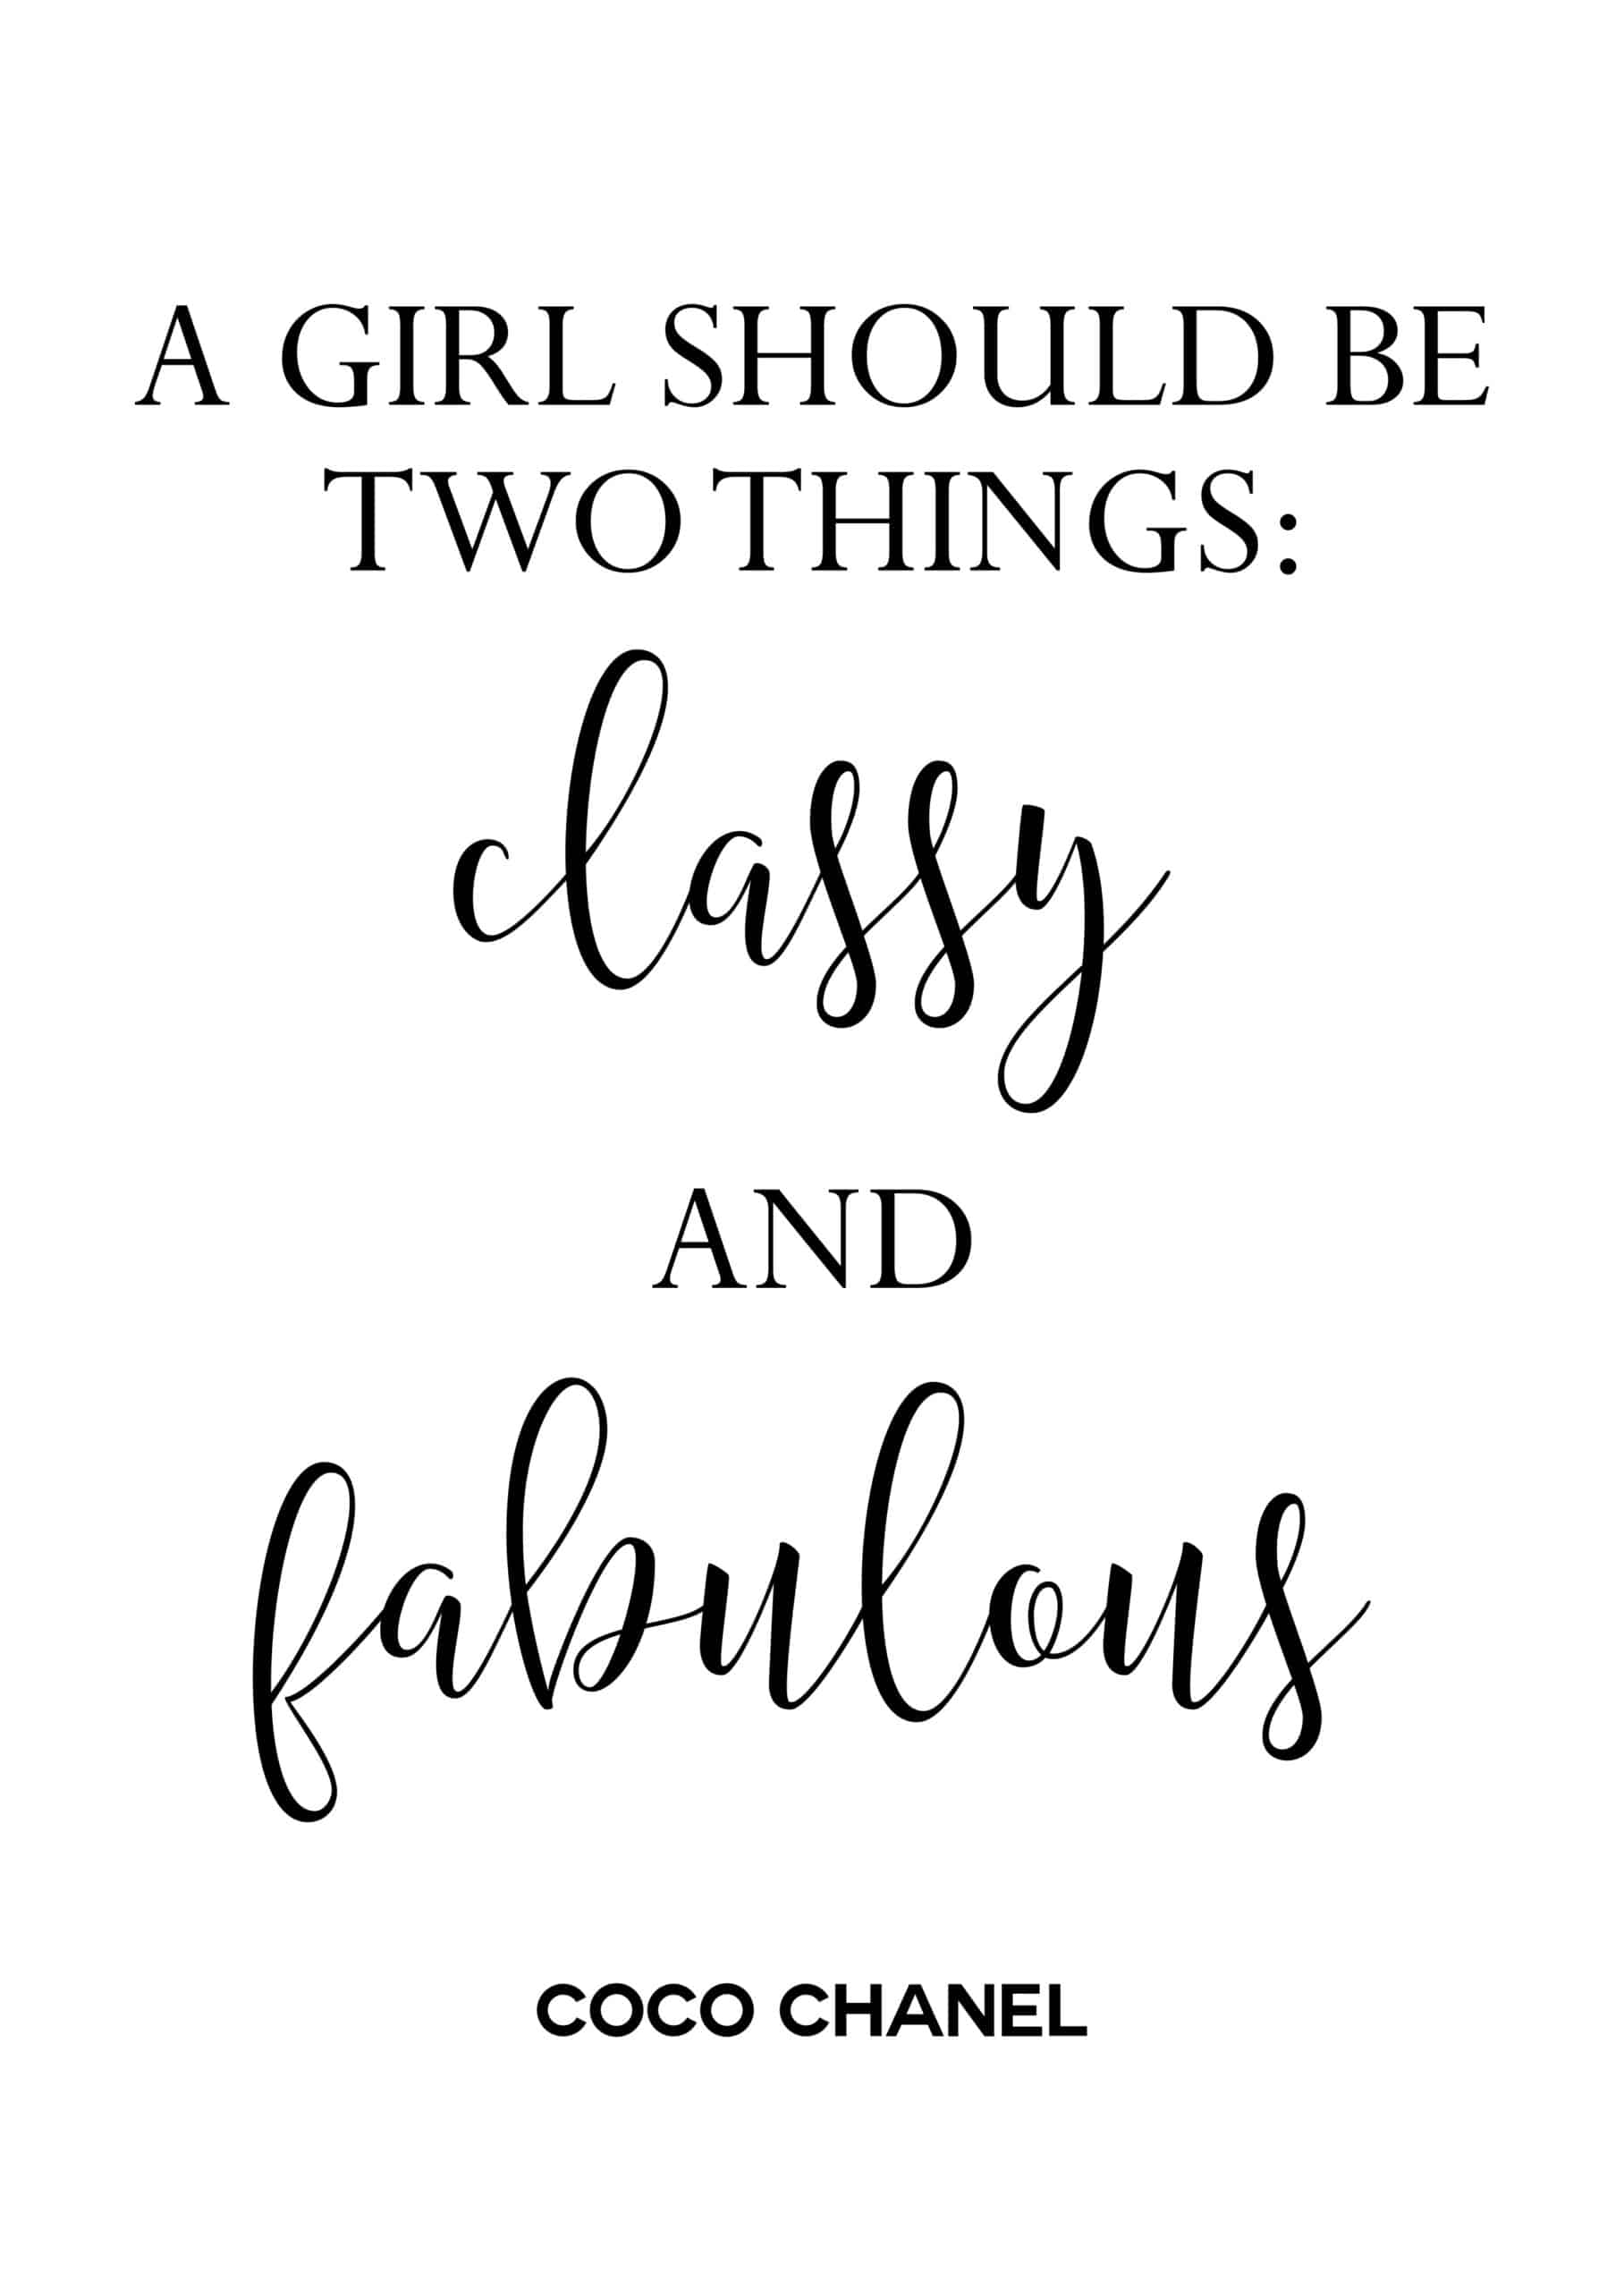 Quote by: Coco Chanel